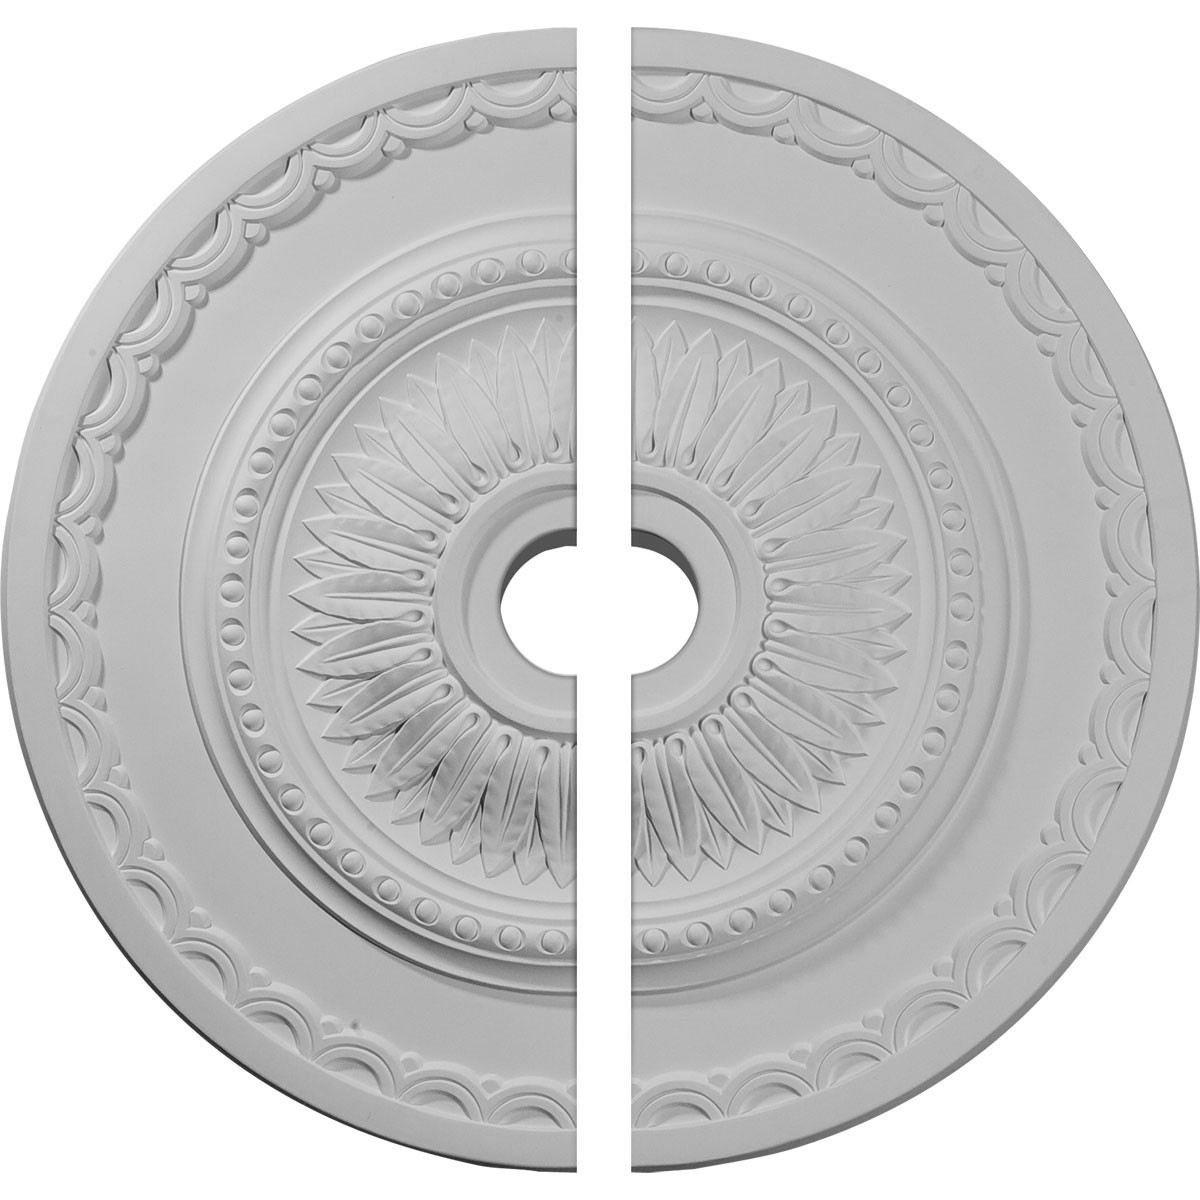 """EM-CM29SF2 - 29 1/2""""OD x 3 5/8""""ID x 1 5/8""""P Sunflower Ceiling Medallion, Two Piece (Fits Canopies up to 5 5/8"""")"""